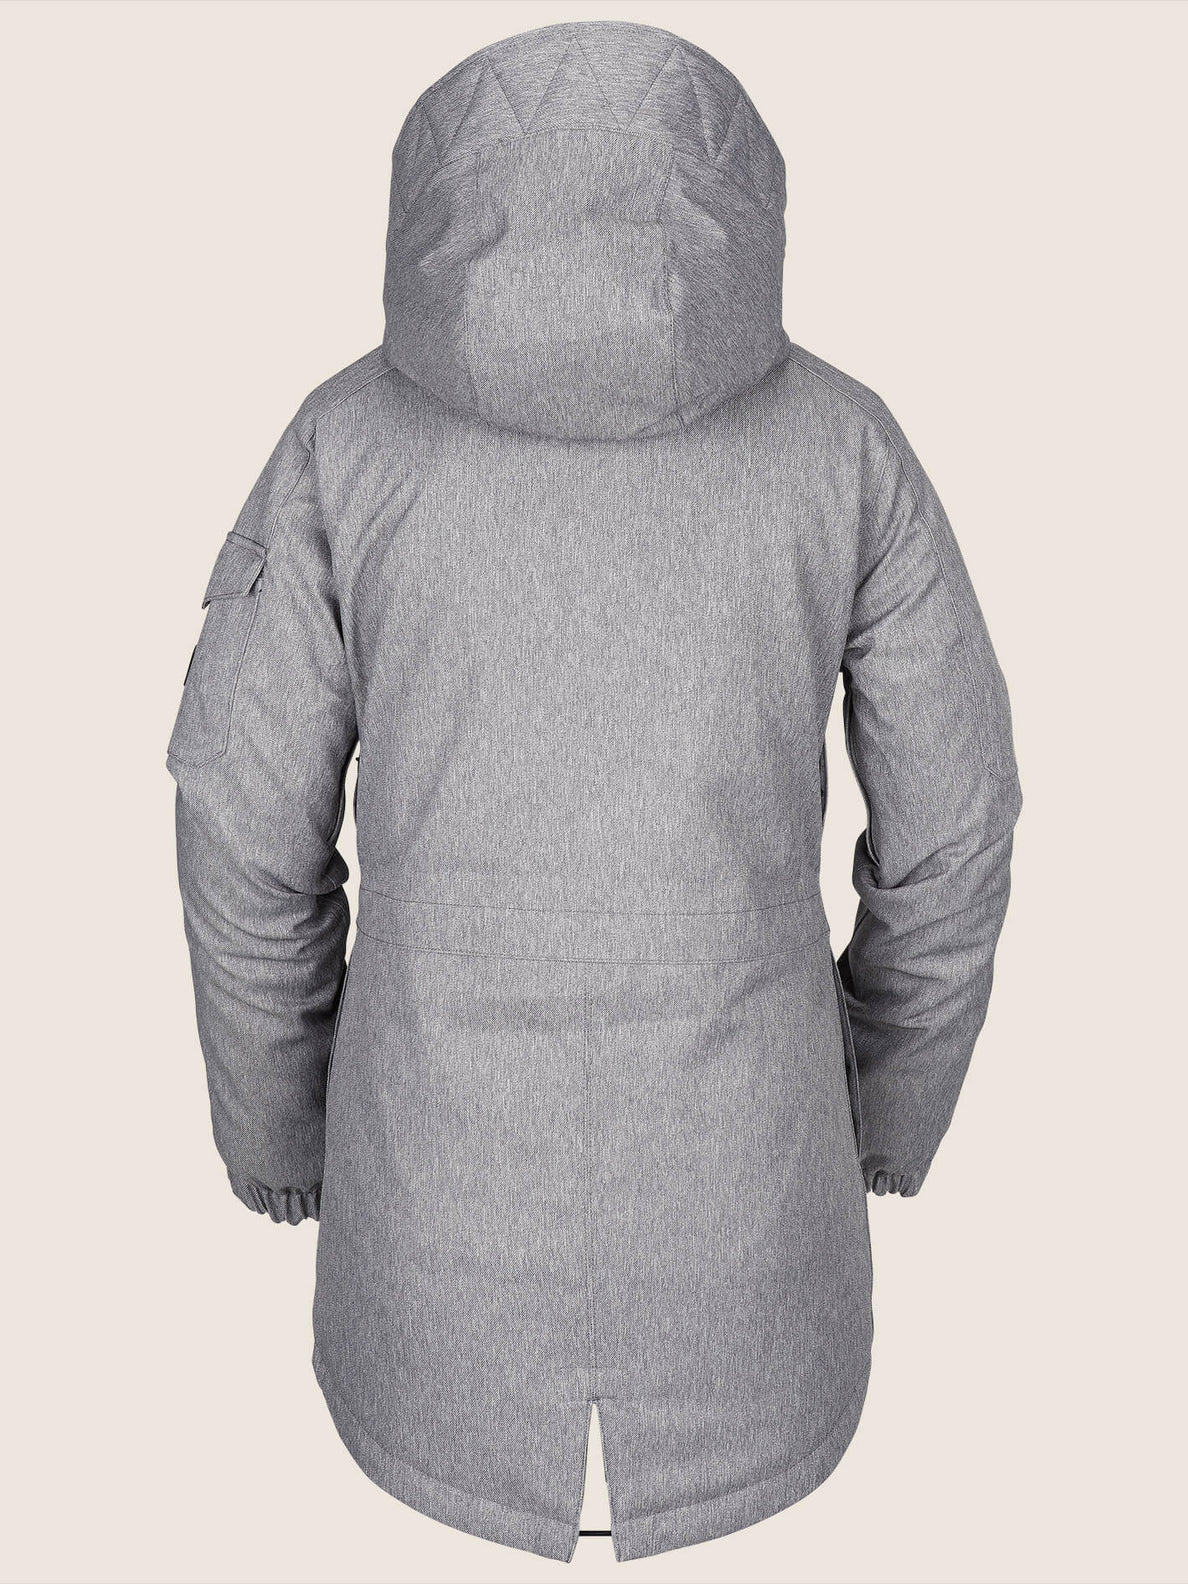 Shrine Insulated Jacket In Heather Grey, Back View